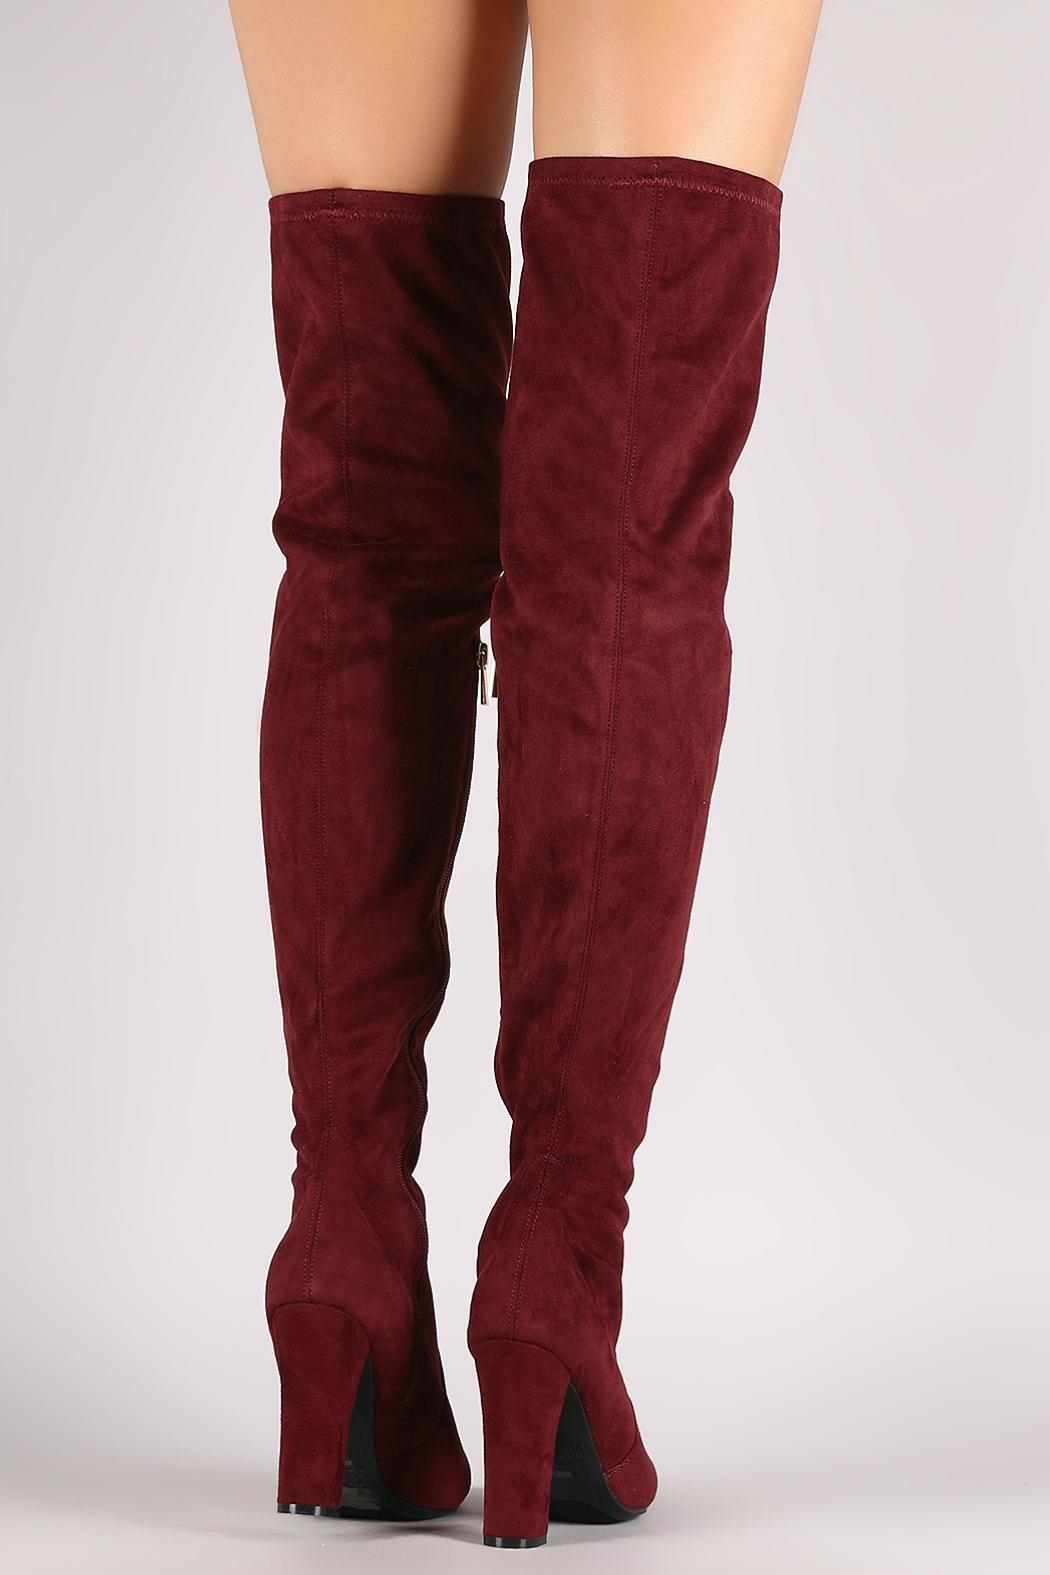 Bamboo Burgundy Over-The-Knee Boots - Front Full Image